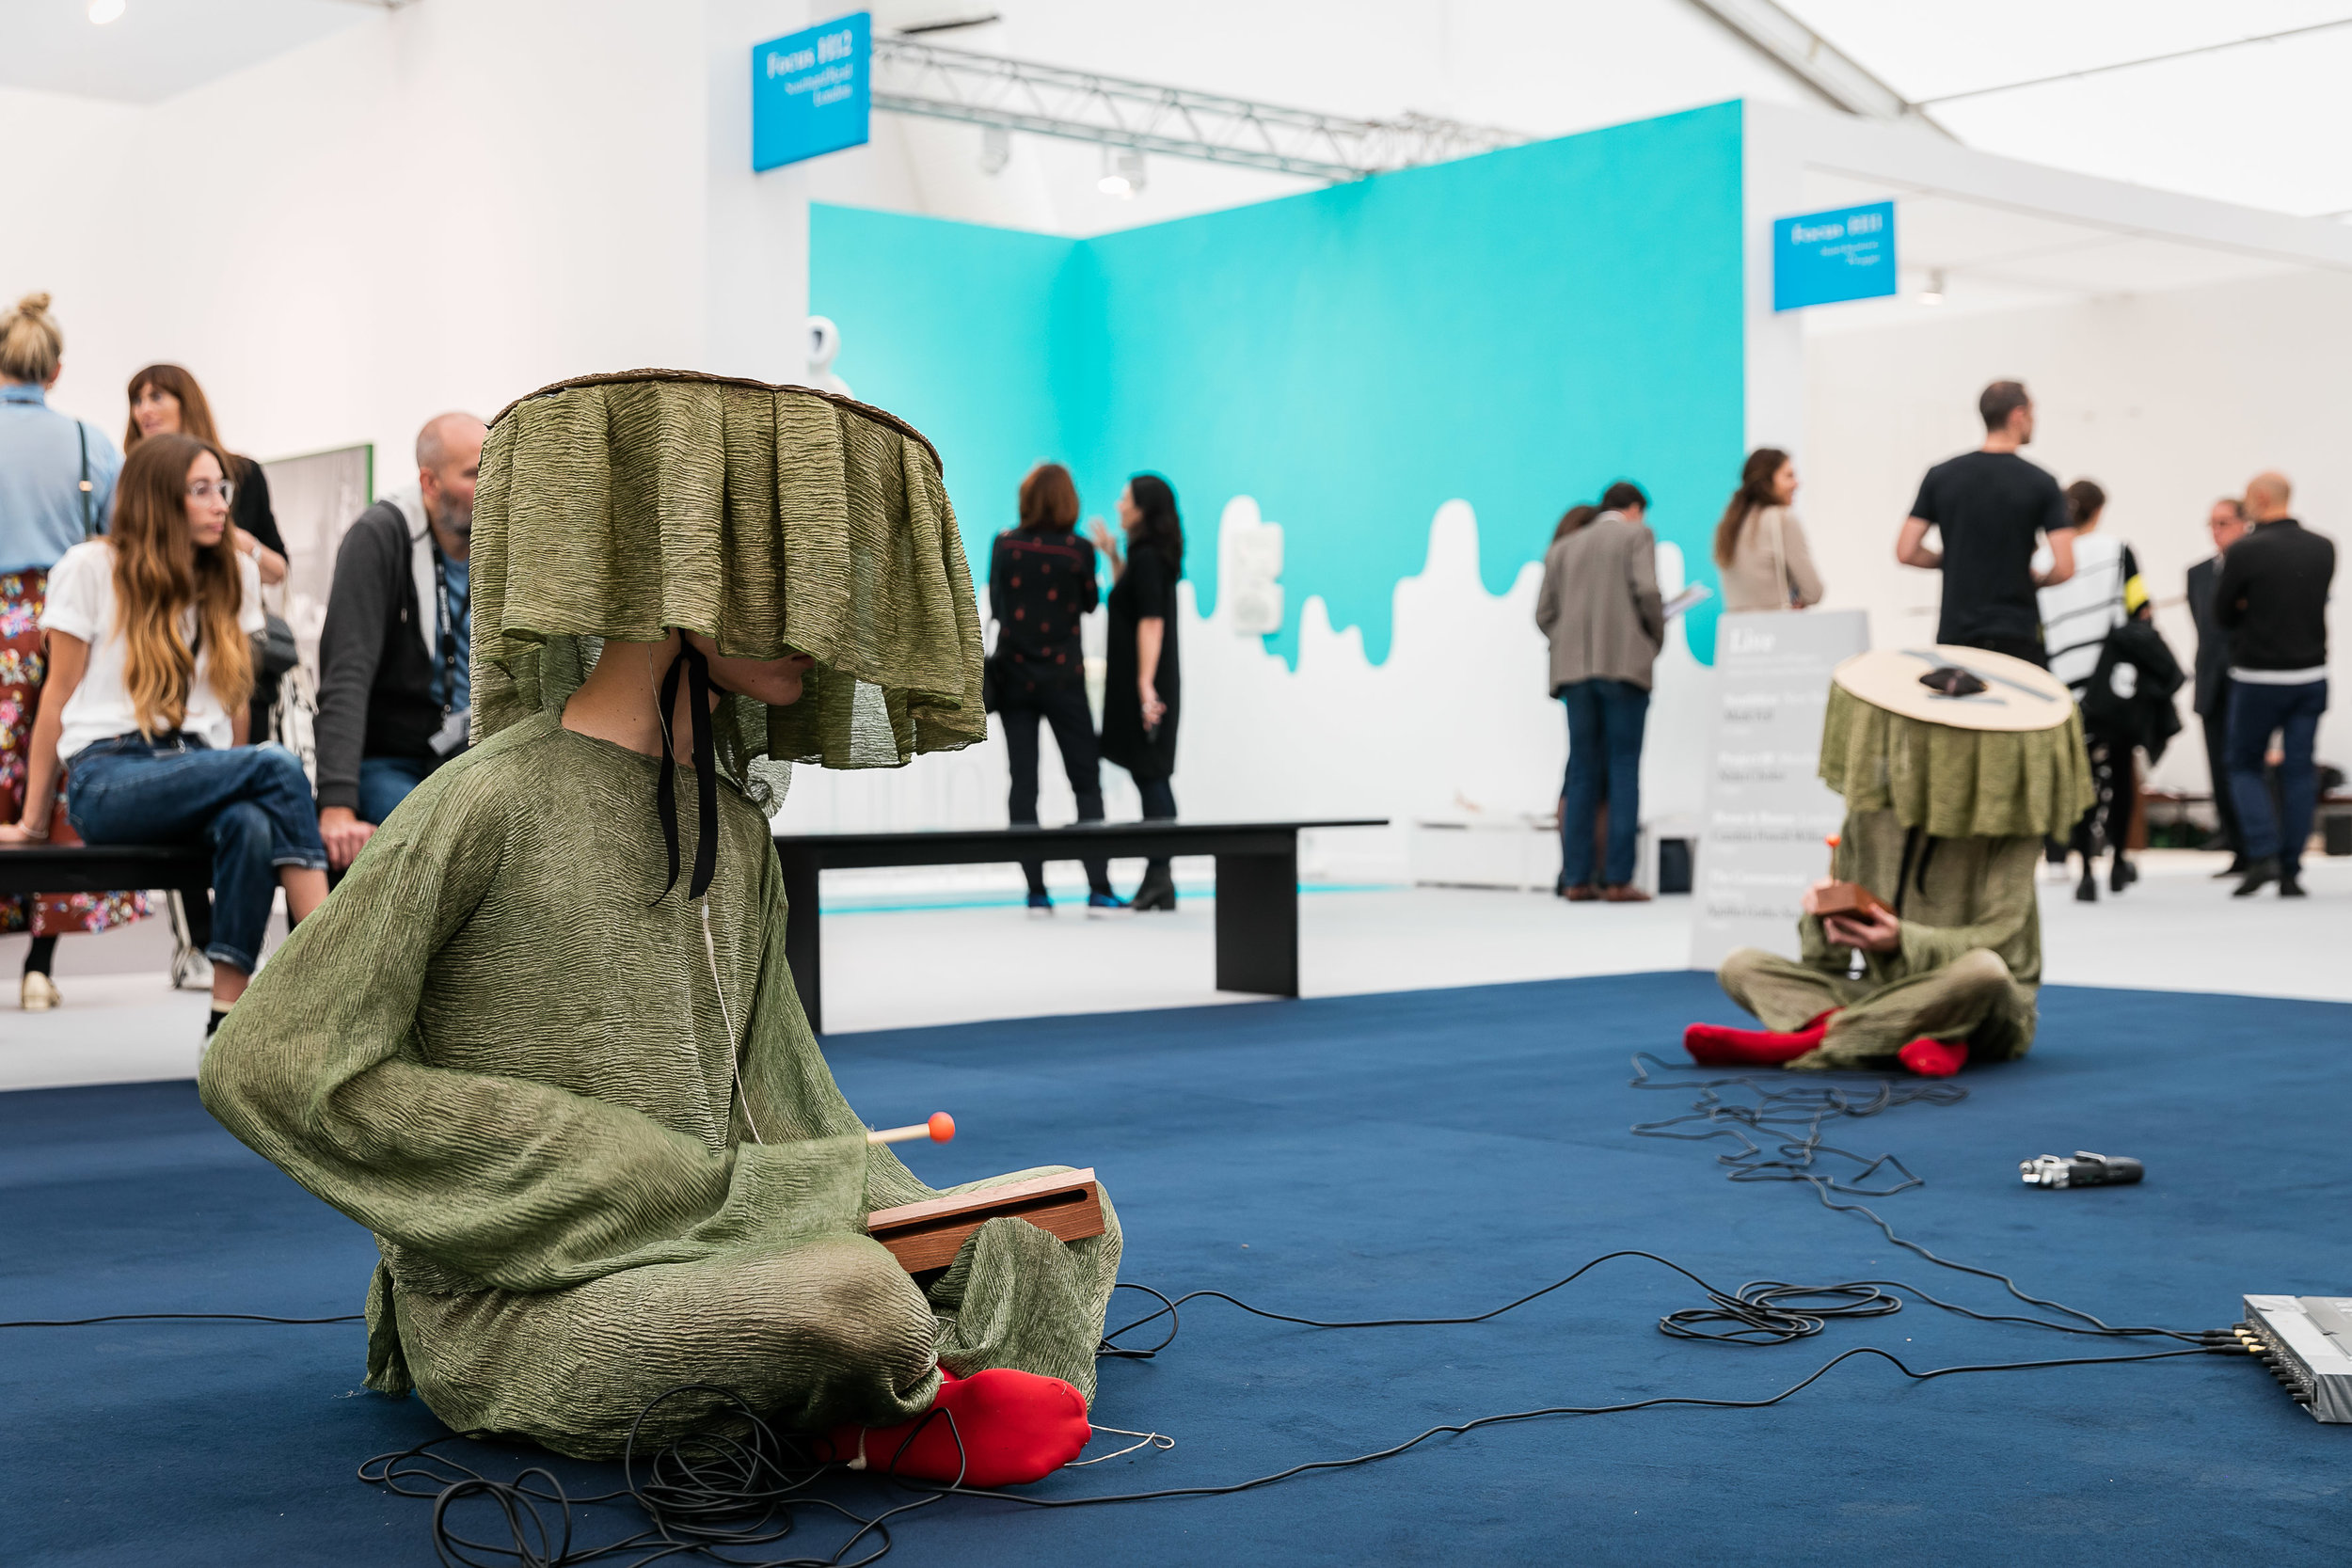 The Live Section at Frieze London.Photo courtesy of Mark Blower/Frieze.